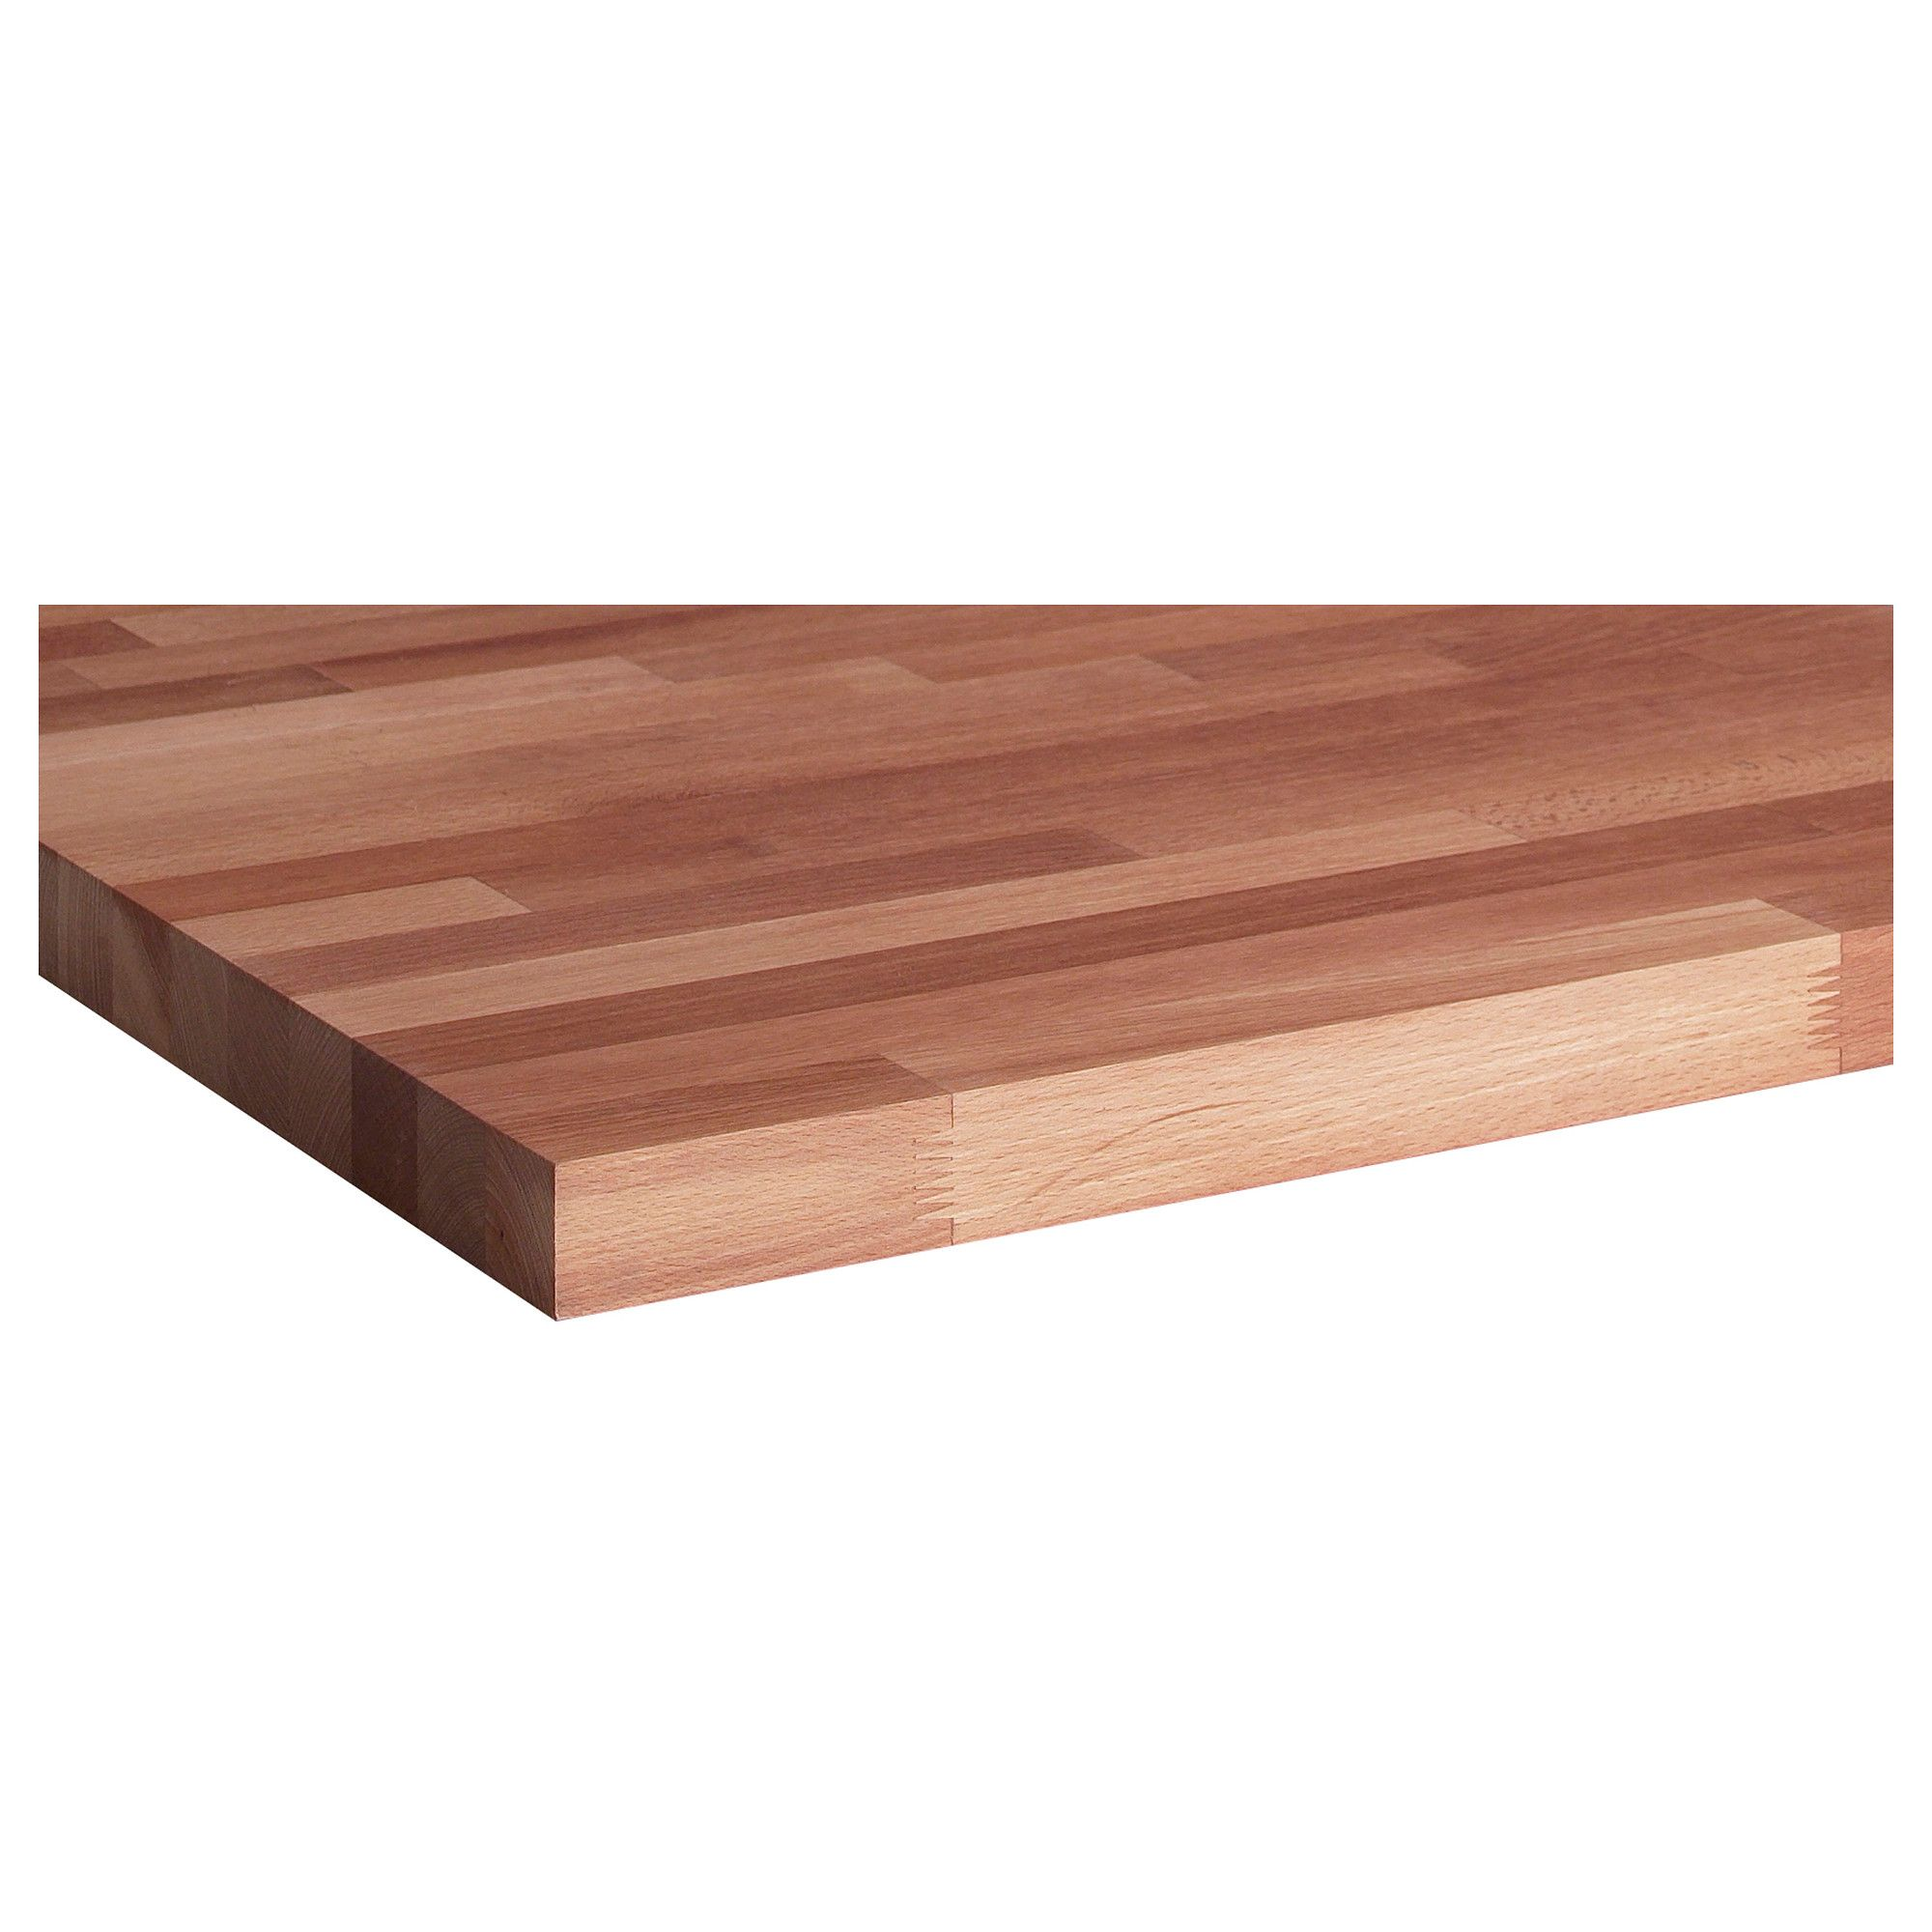 "lagan countertop, beech. $59. 96-7/8""x25-5/8"". 1-1/8"" thick. solid"